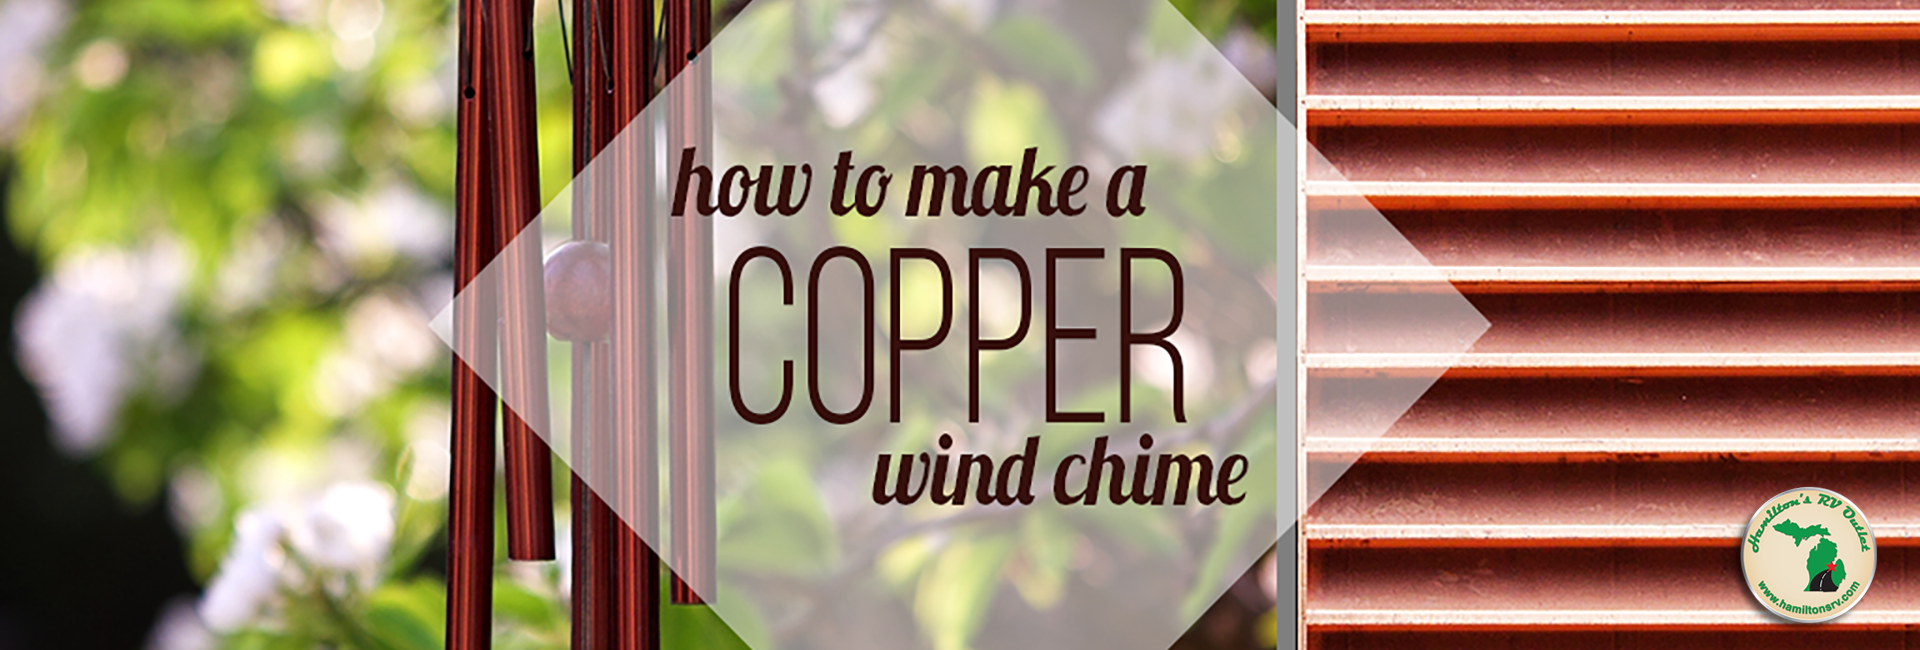 How to make copper wind chimes Banner